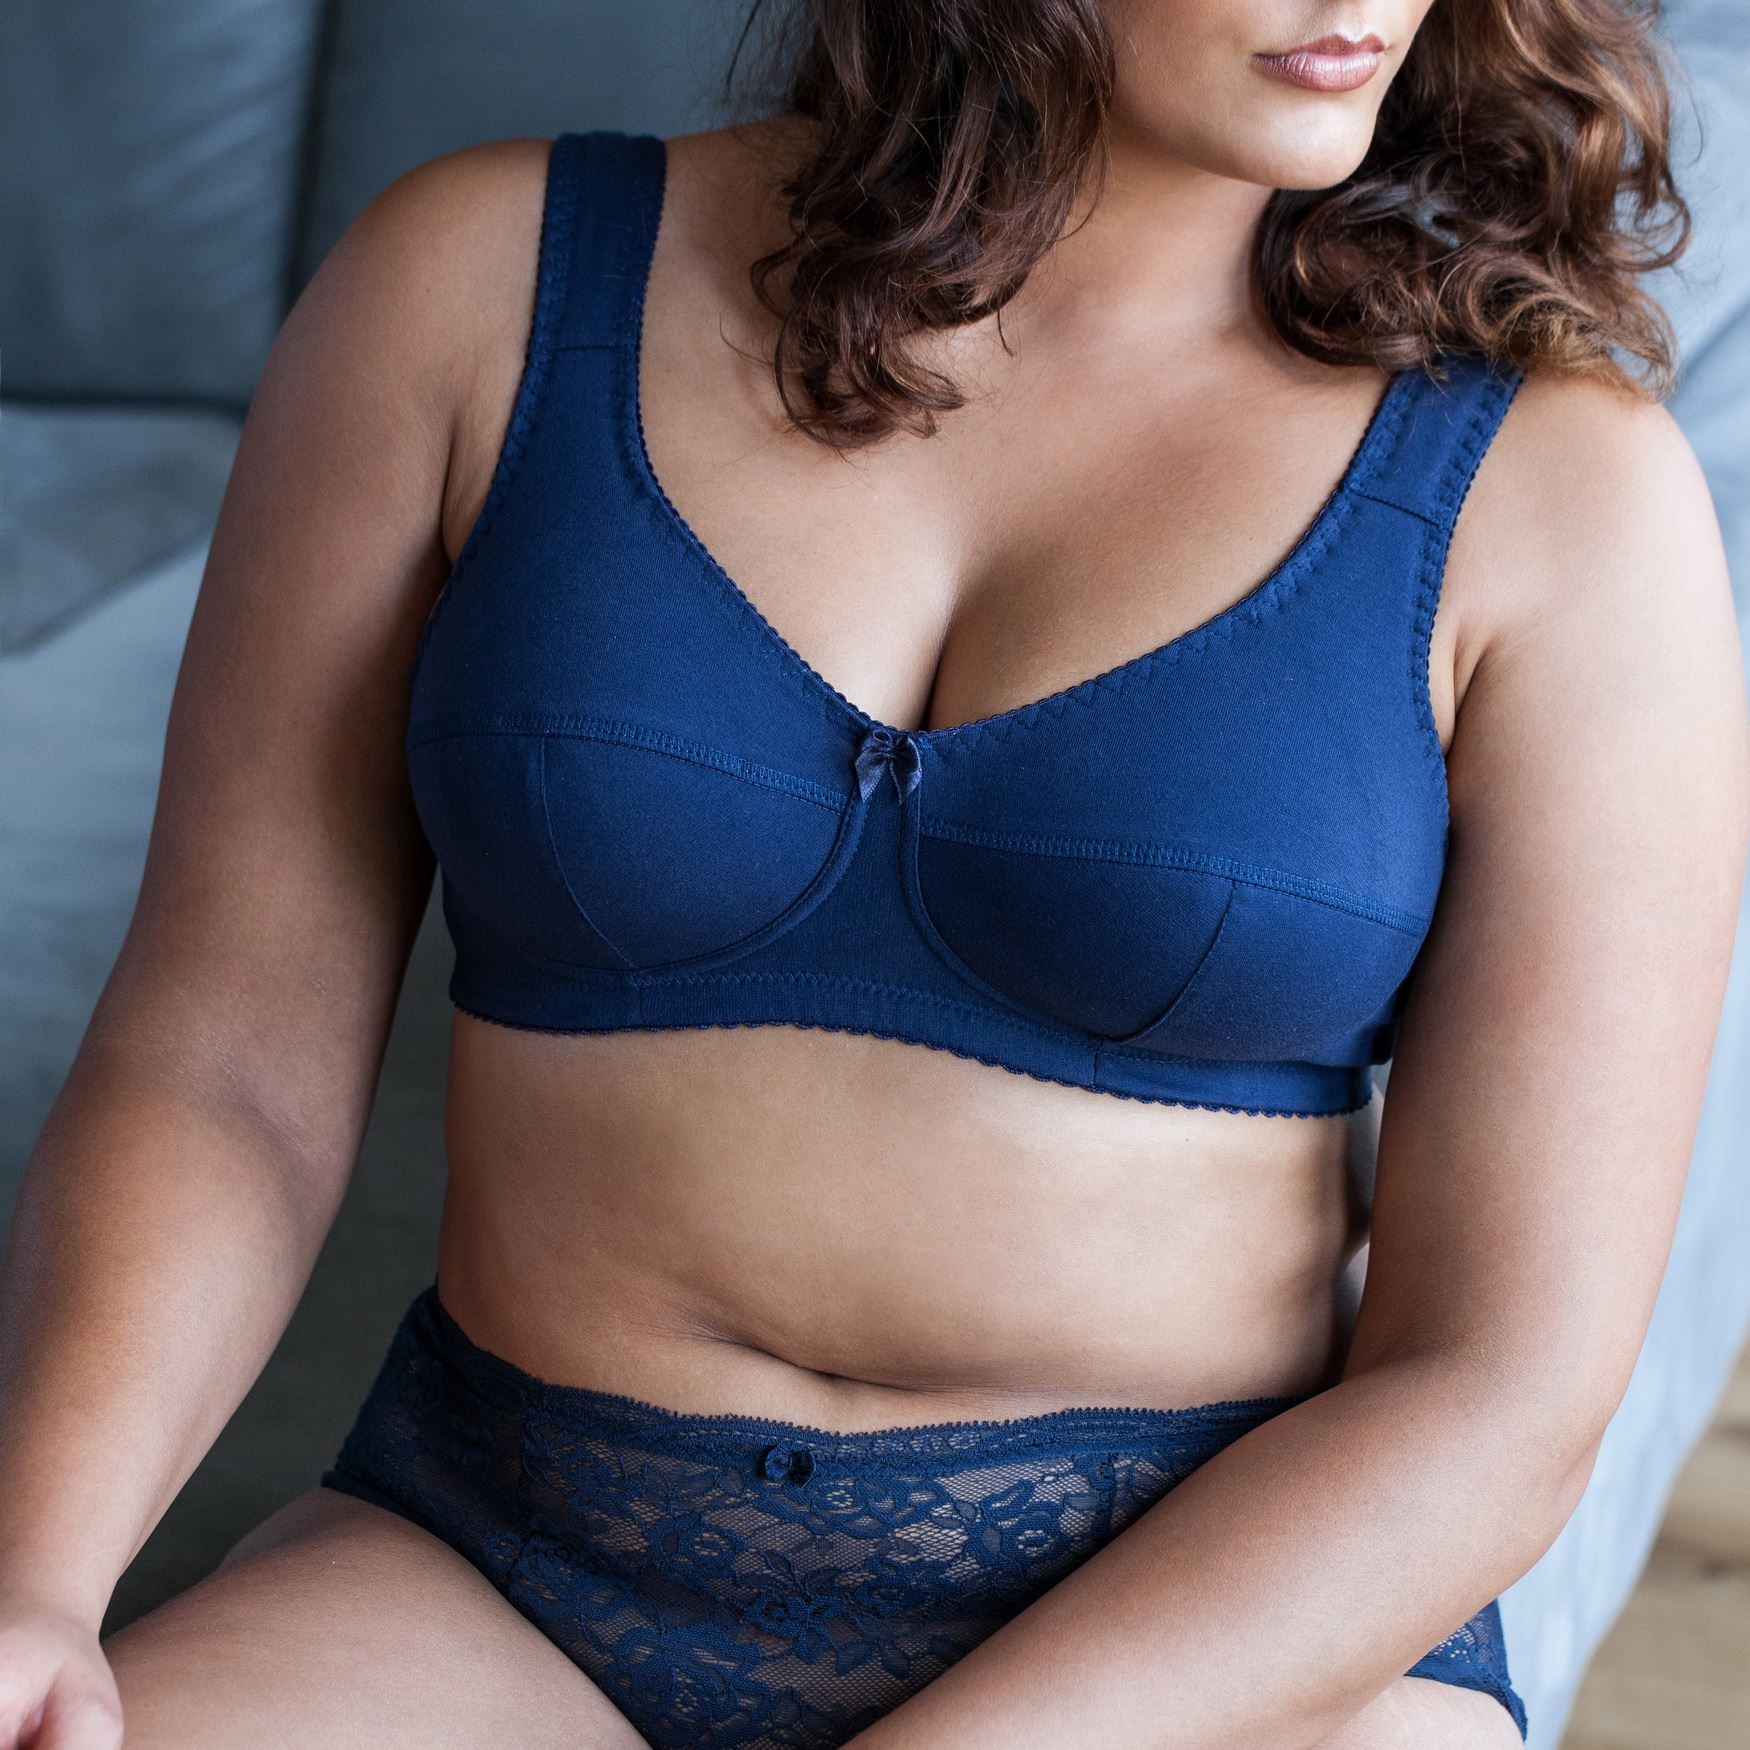 Cotton-Wireless-Plus-Size-Full-Coverage-Sleep-Unlined-Minimizer-Figure-Bra thumbnail 7